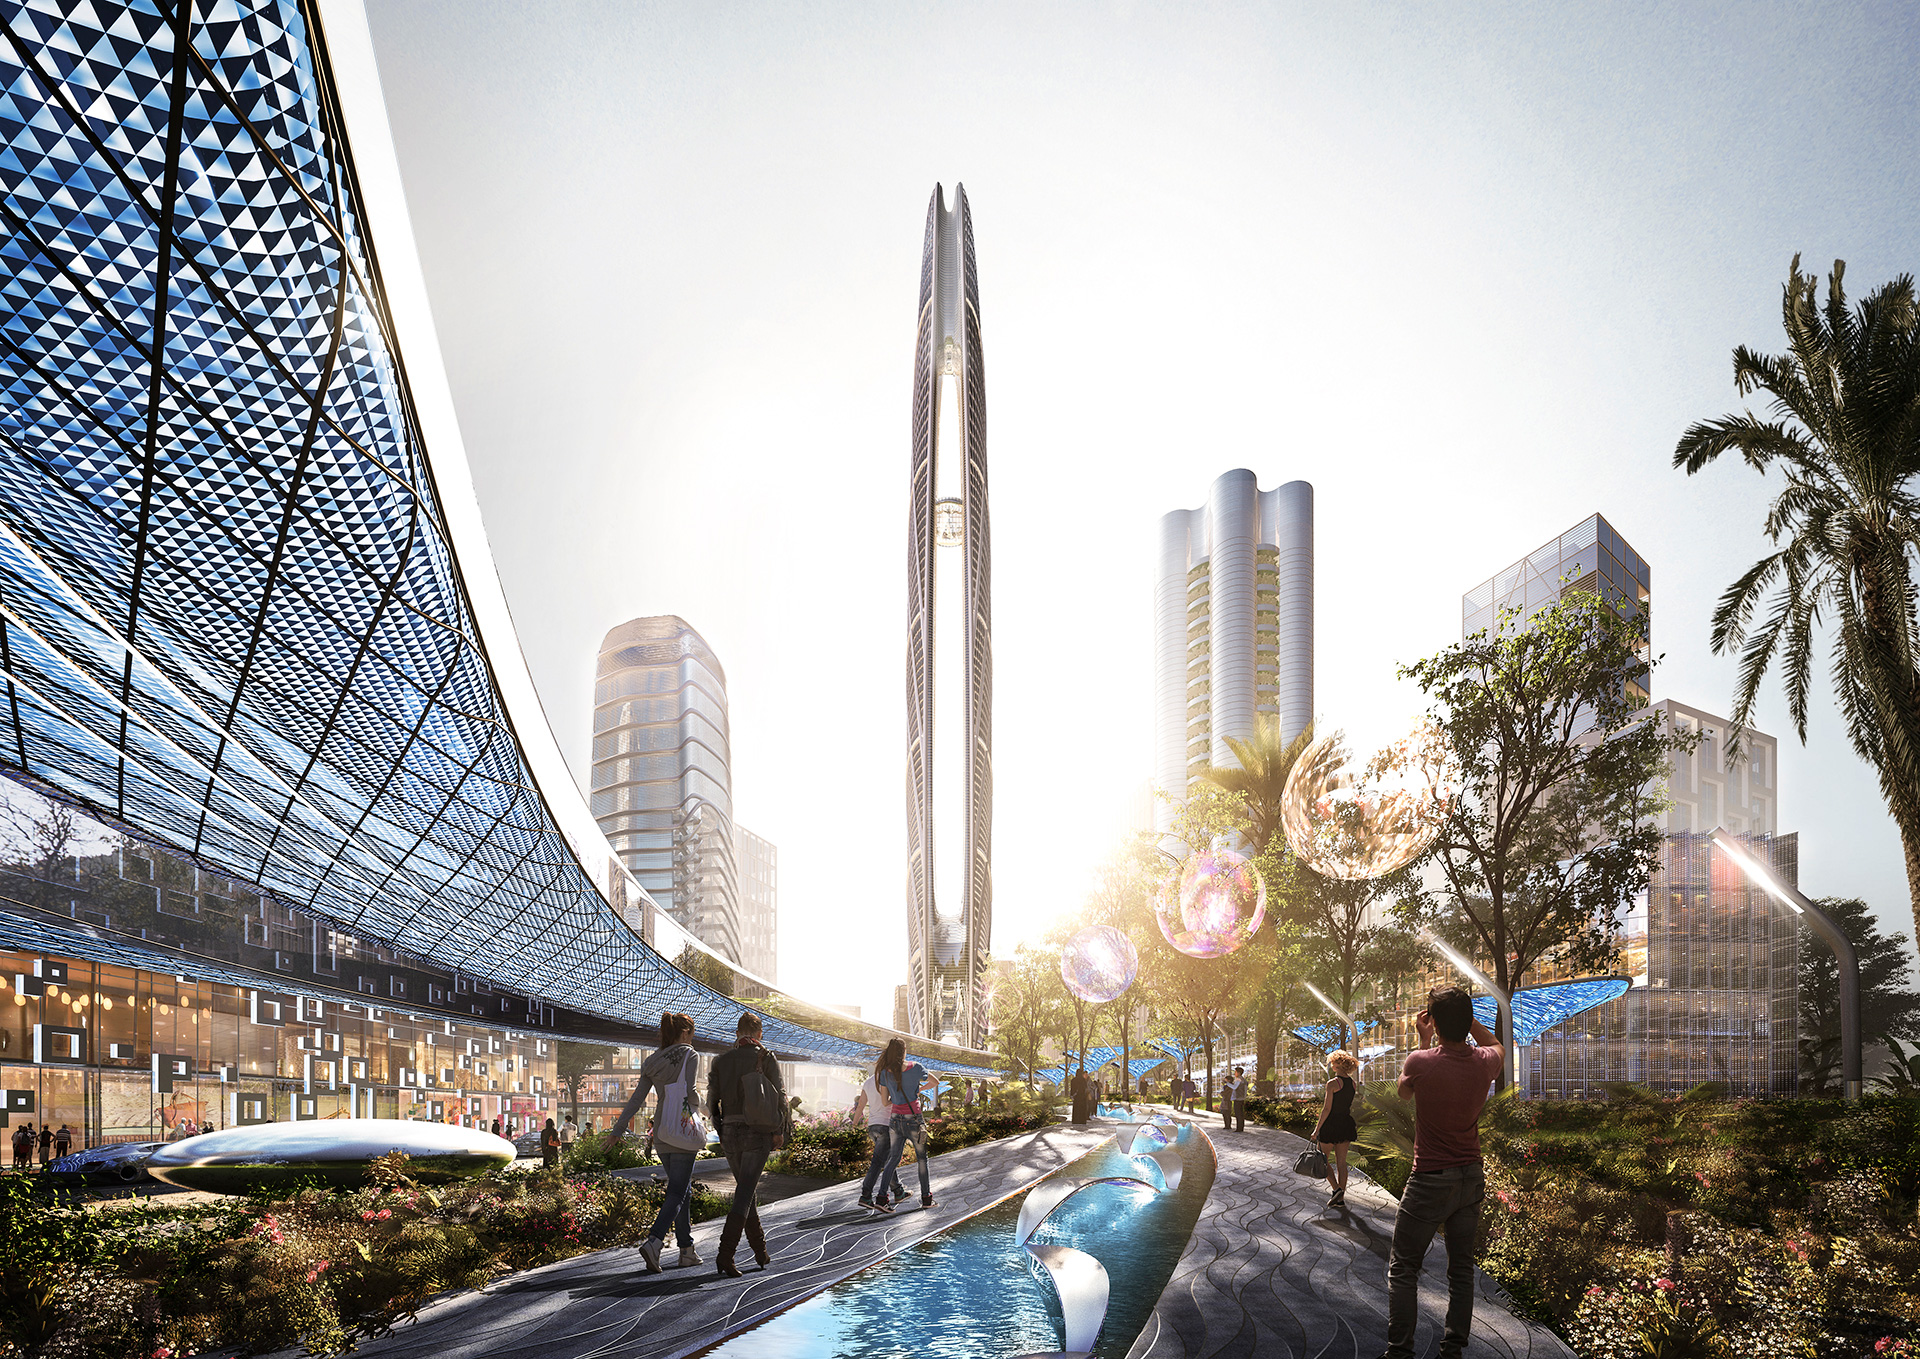 The Burj Jumeira has been planned as a multi-functional tower with retail outlets along its periphery| Skidmore, Owings & Merrill LLP| STIR